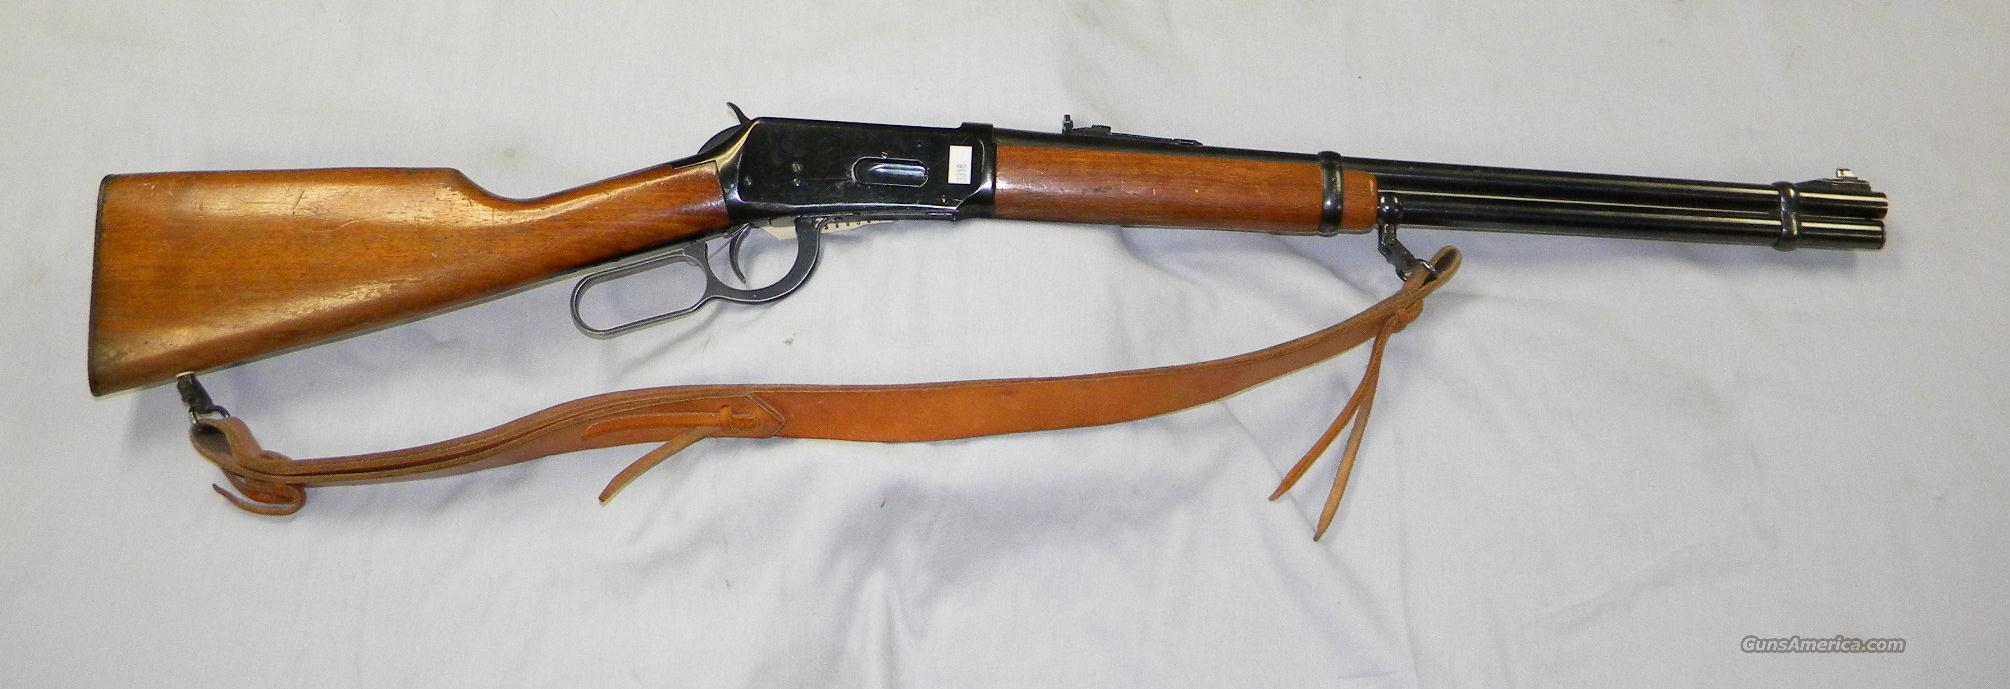 1971 Winchester 94 in 30/30  Guns > Rifles > Winchester Rifles - Modern Lever > Model 94 > Post-64